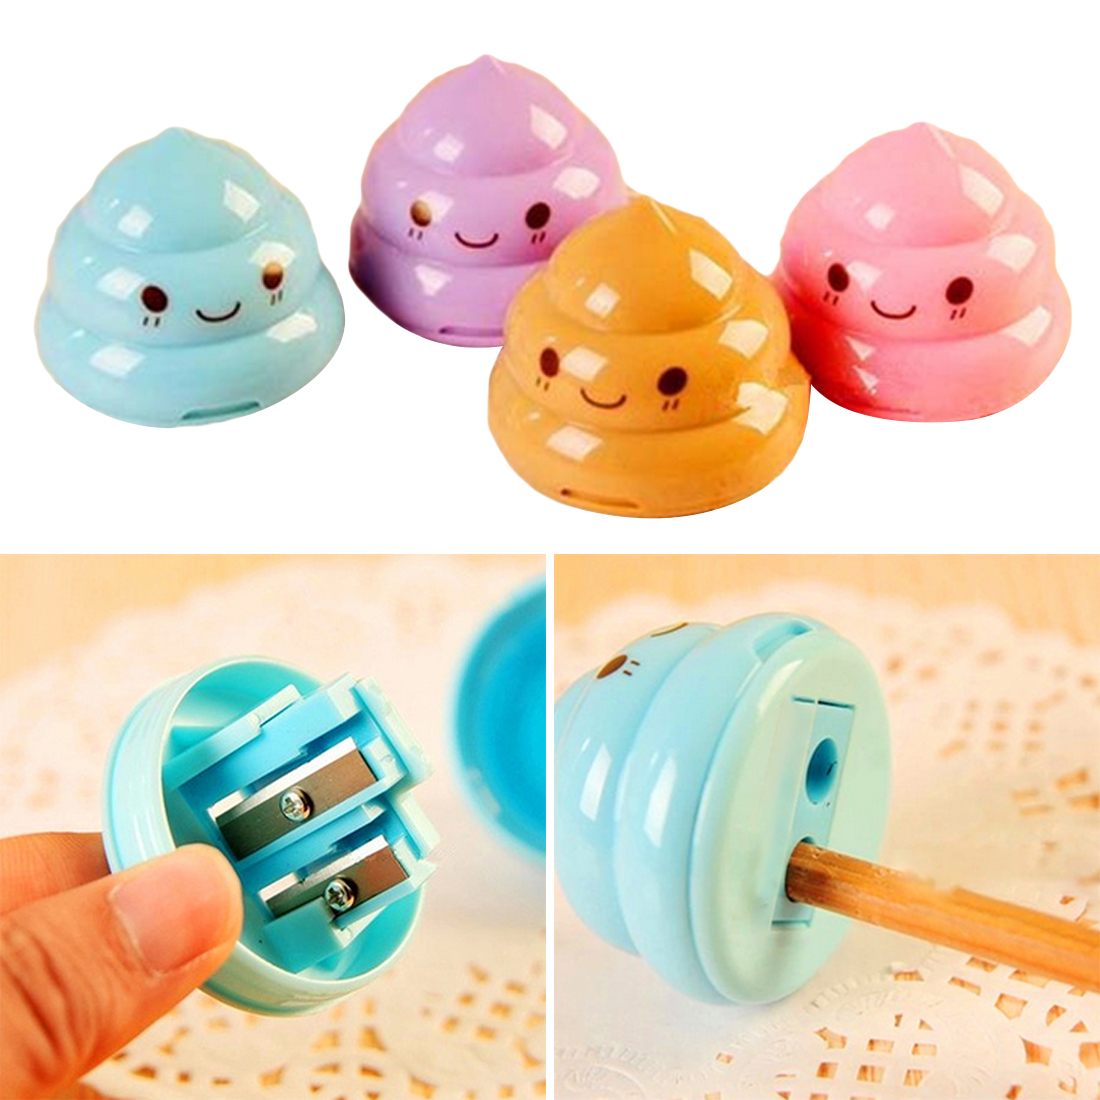 Back To Search Resultsoffice & School Supplies 1 Pc Kawaii Shit Pencil Sharpener Shape Mini Cutter Knife Double Orifice Promotional Originality Gift Stationery Random Color